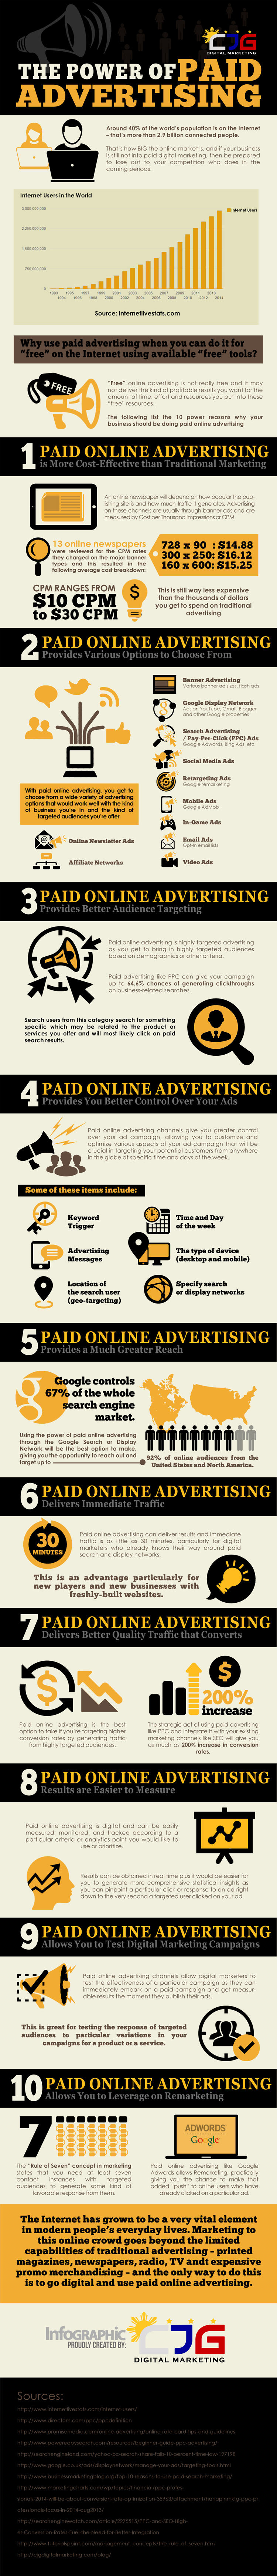 The-Power-of-Paid-Online-Advertising